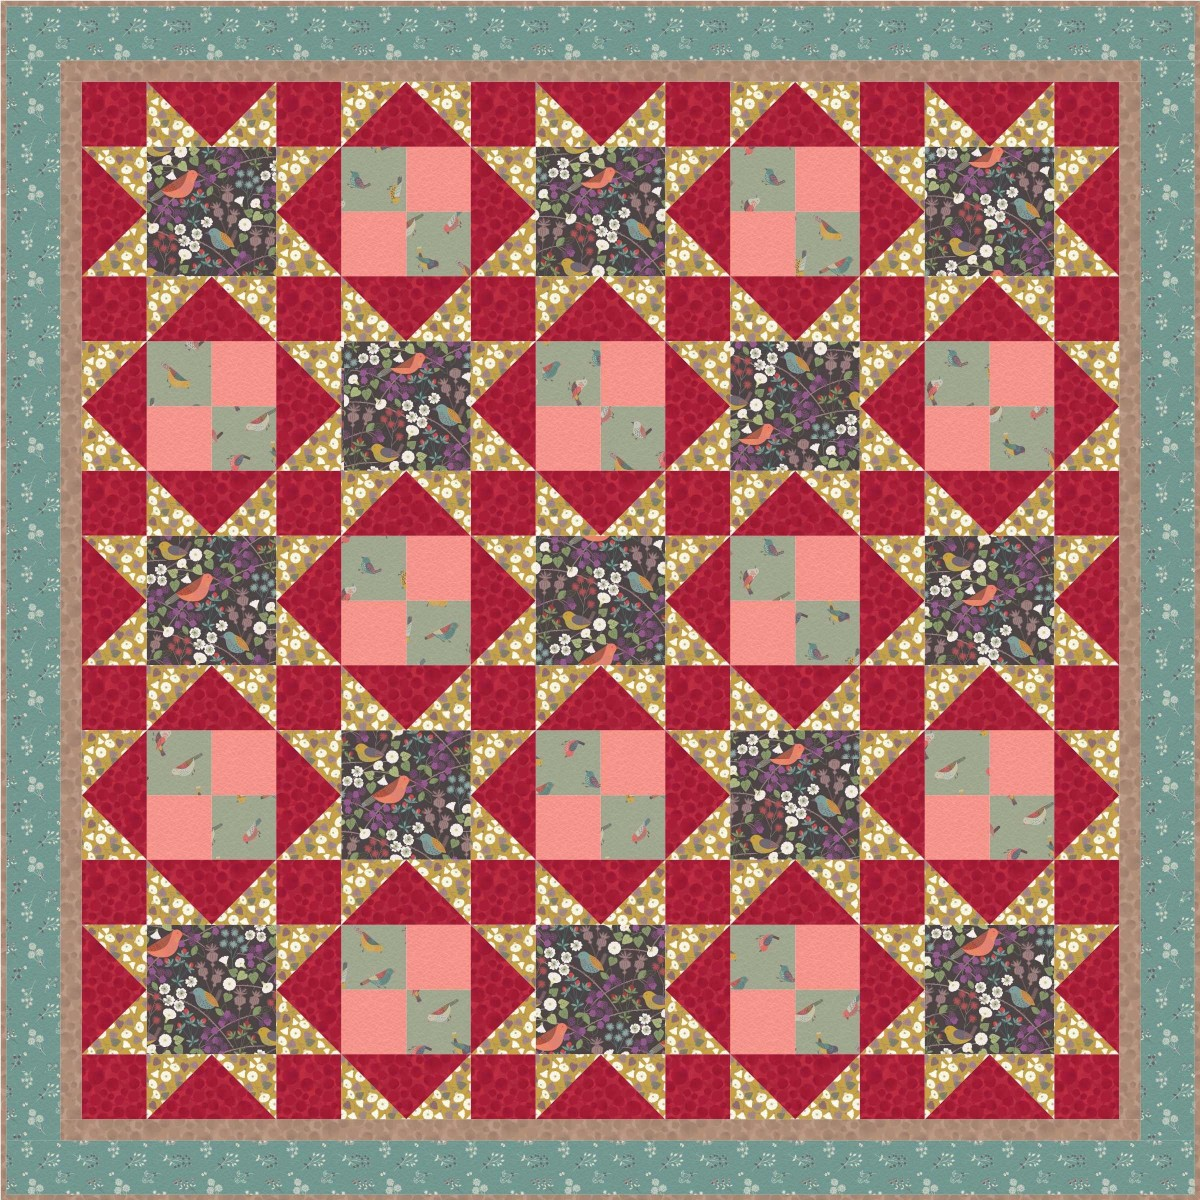 The Hedgerow Quilt Design 3